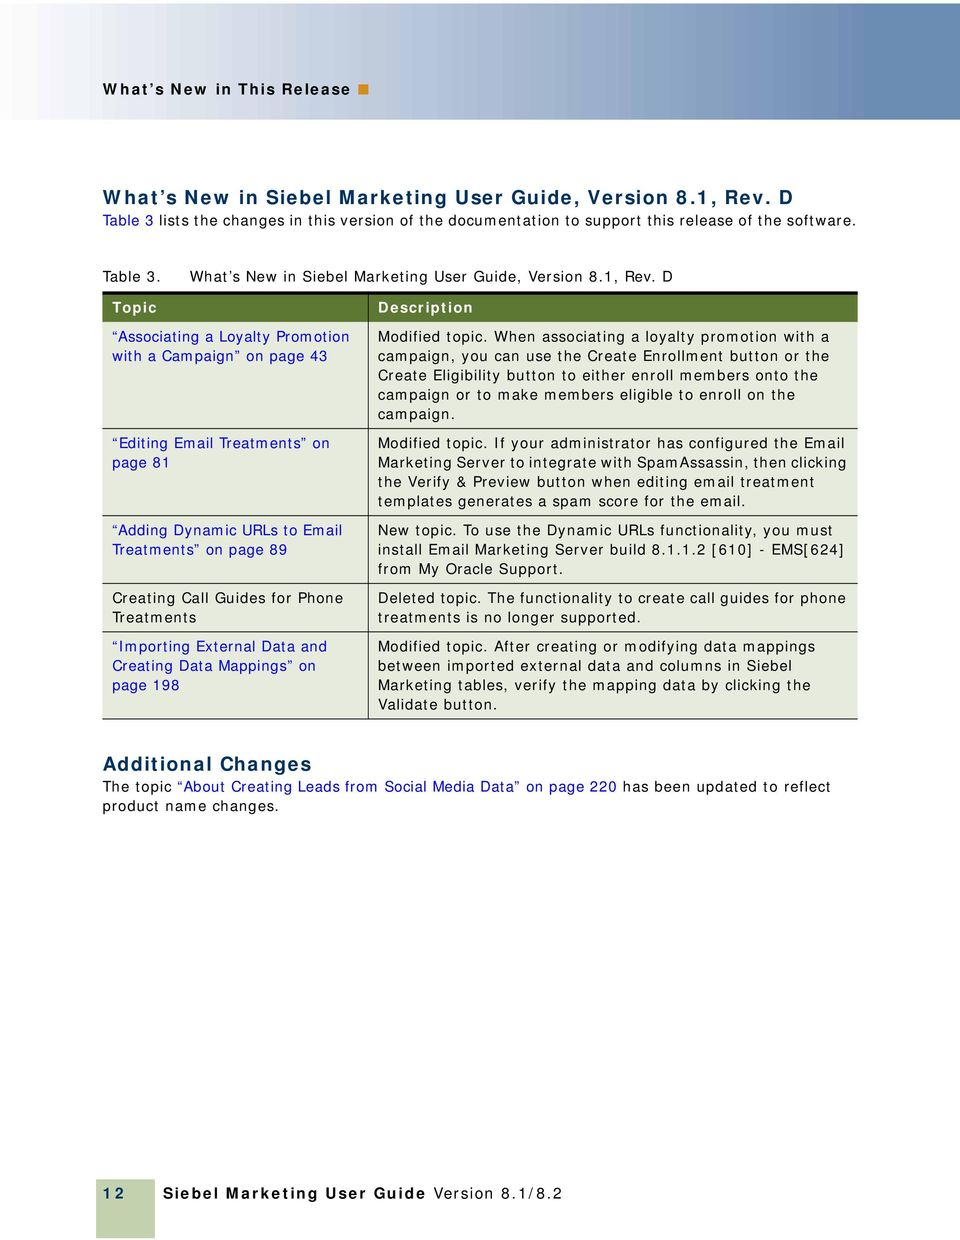 D Description Associating a Loyalty Promotion with a Campaign on page 43 Editing Email Treatments on page 81 Adding Dynamic URLs to Email Treatments on page 89 Creating Call Guides for Phone